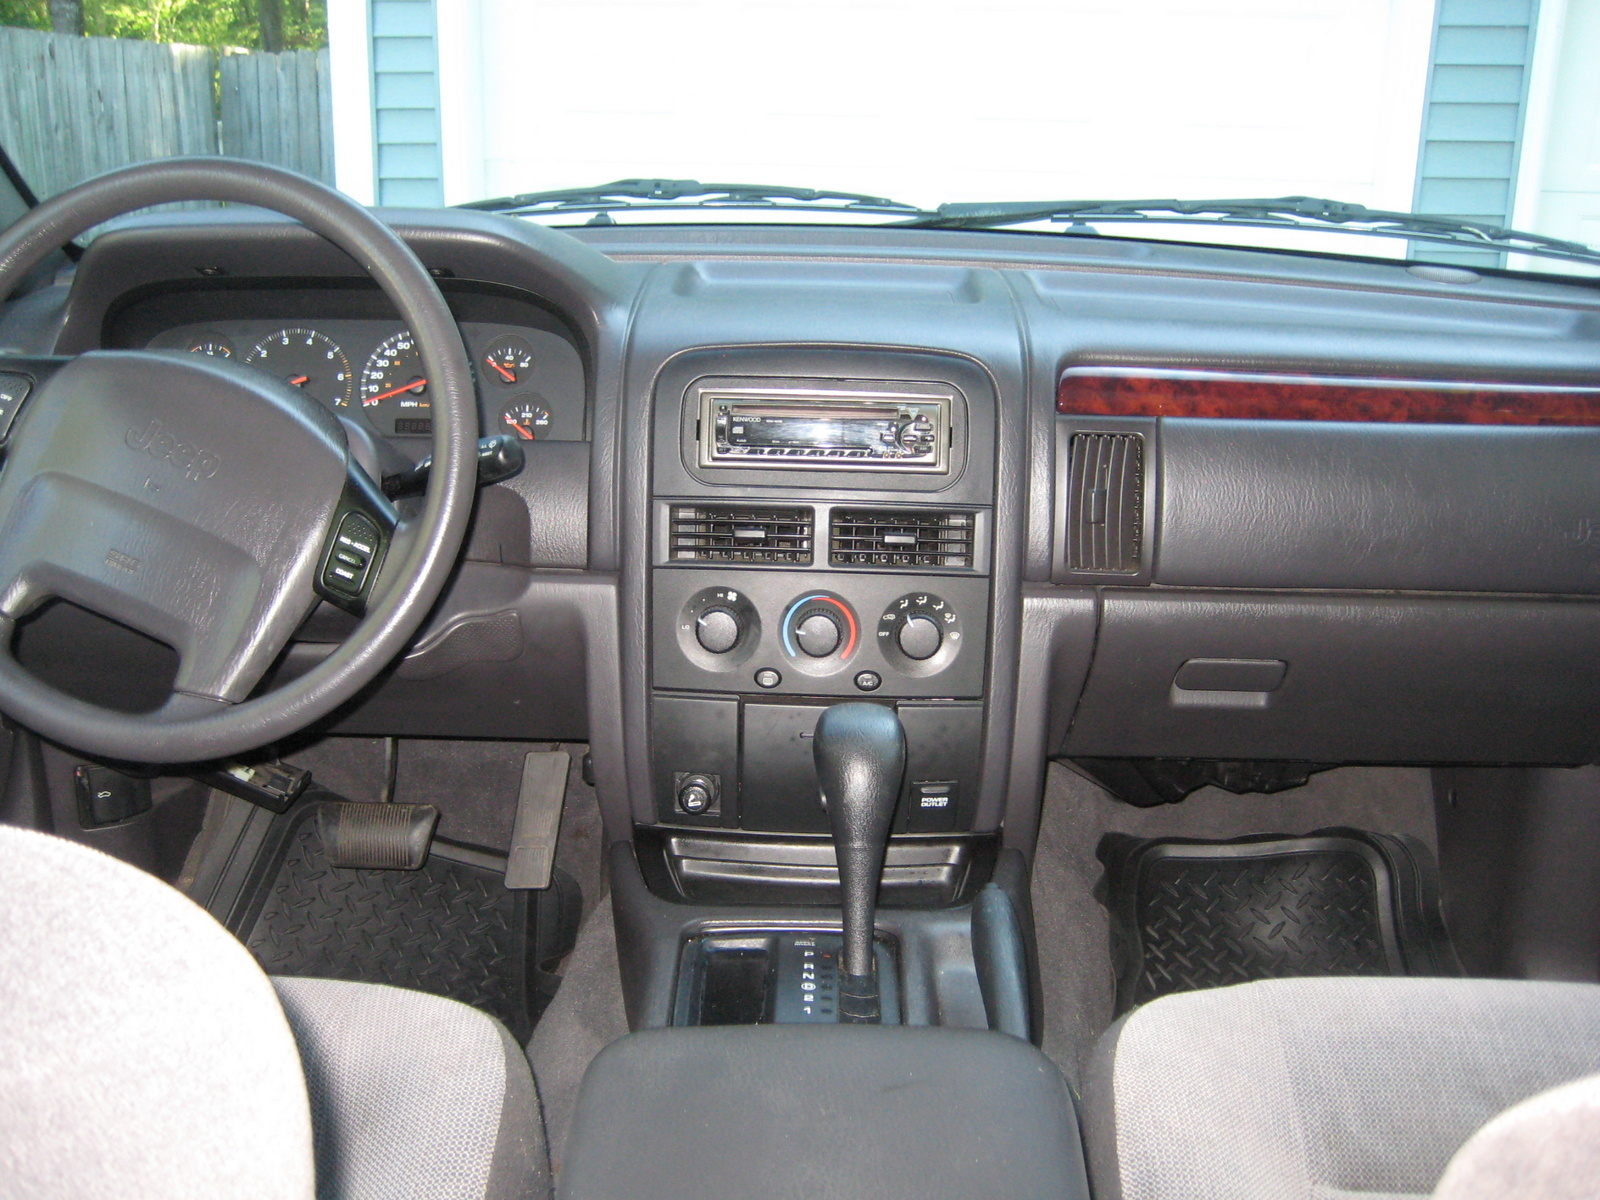 2000 jeep grand cherokee interior pictures cargurus. Black Bedroom Furniture Sets. Home Design Ideas